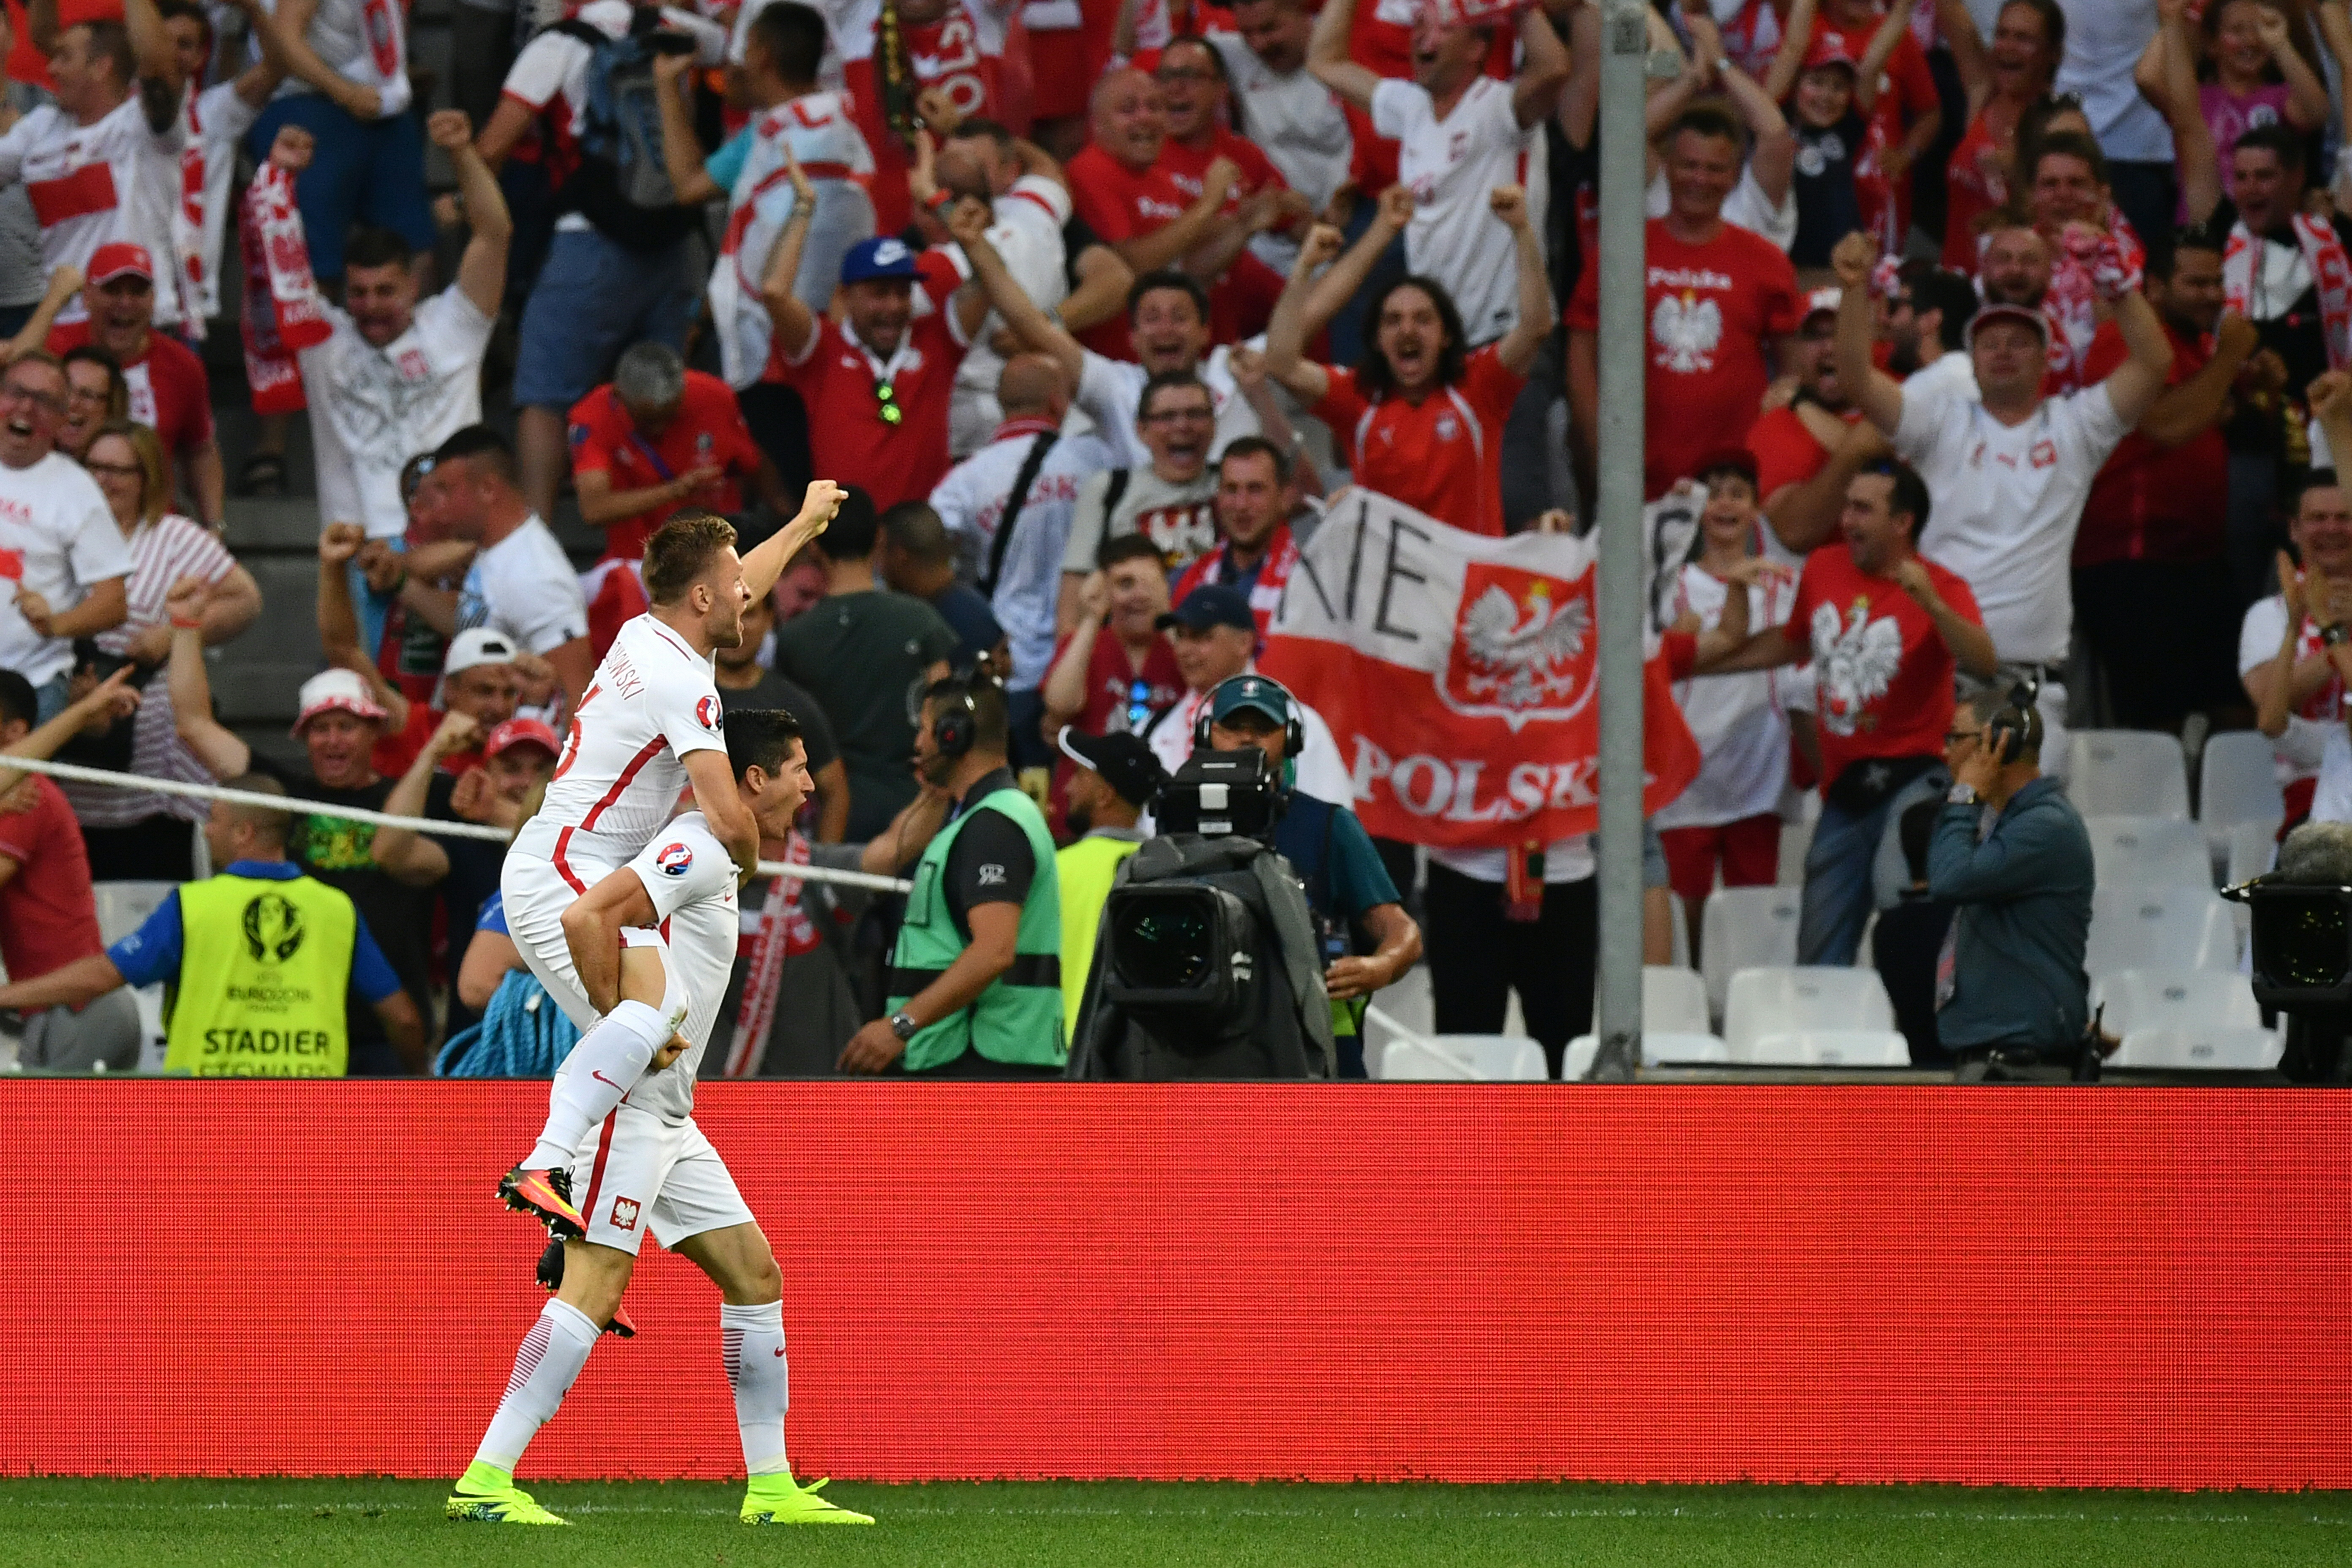 Poland's forward Robert Lewandowski (R) celebrates with Poland's midfielder Jakub Blaszczykowski (L) after scoring the first goal during the Euro 2016 quarter-final football match between Poland and Portugal at the Stade Velodrome in Marseille on June 30, 2016. / AFP PHOTO / BERTRAND LANGLOIS